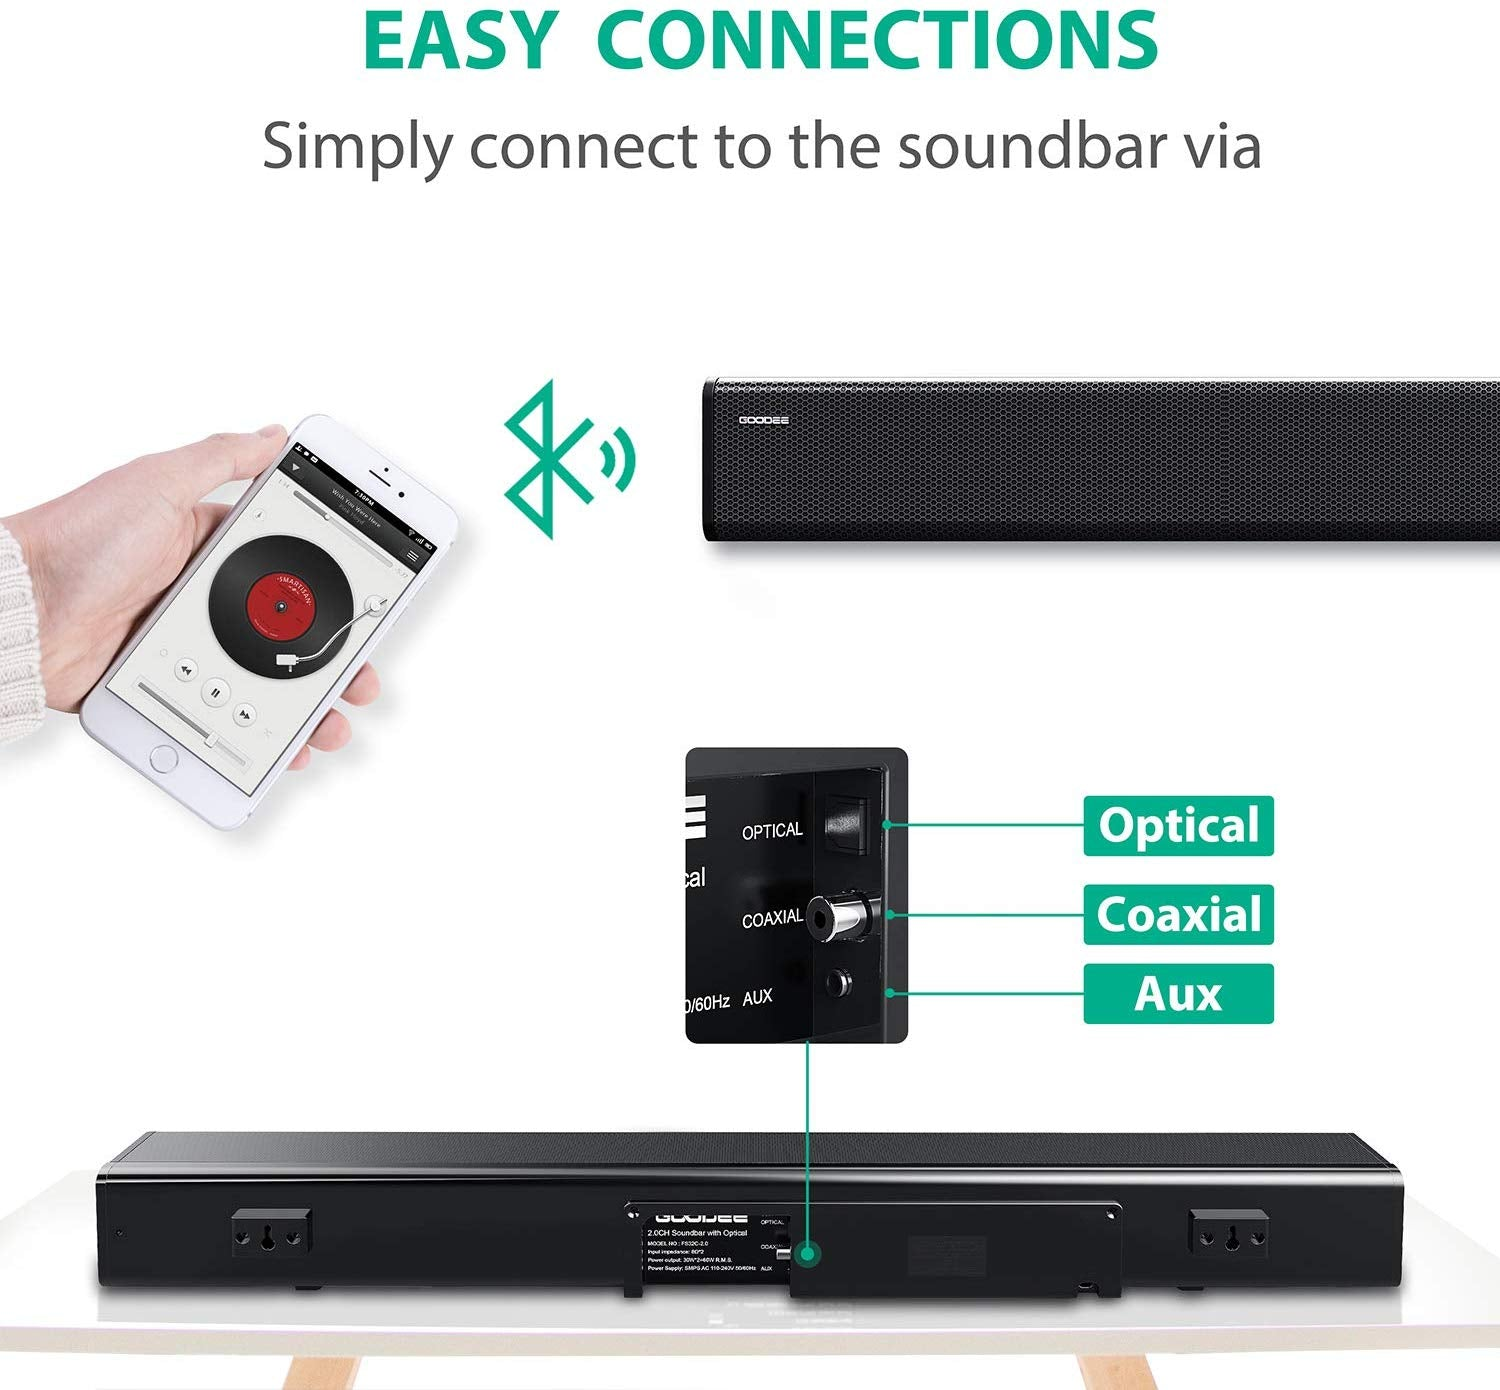 Goodee Sound Bar Easy Connections